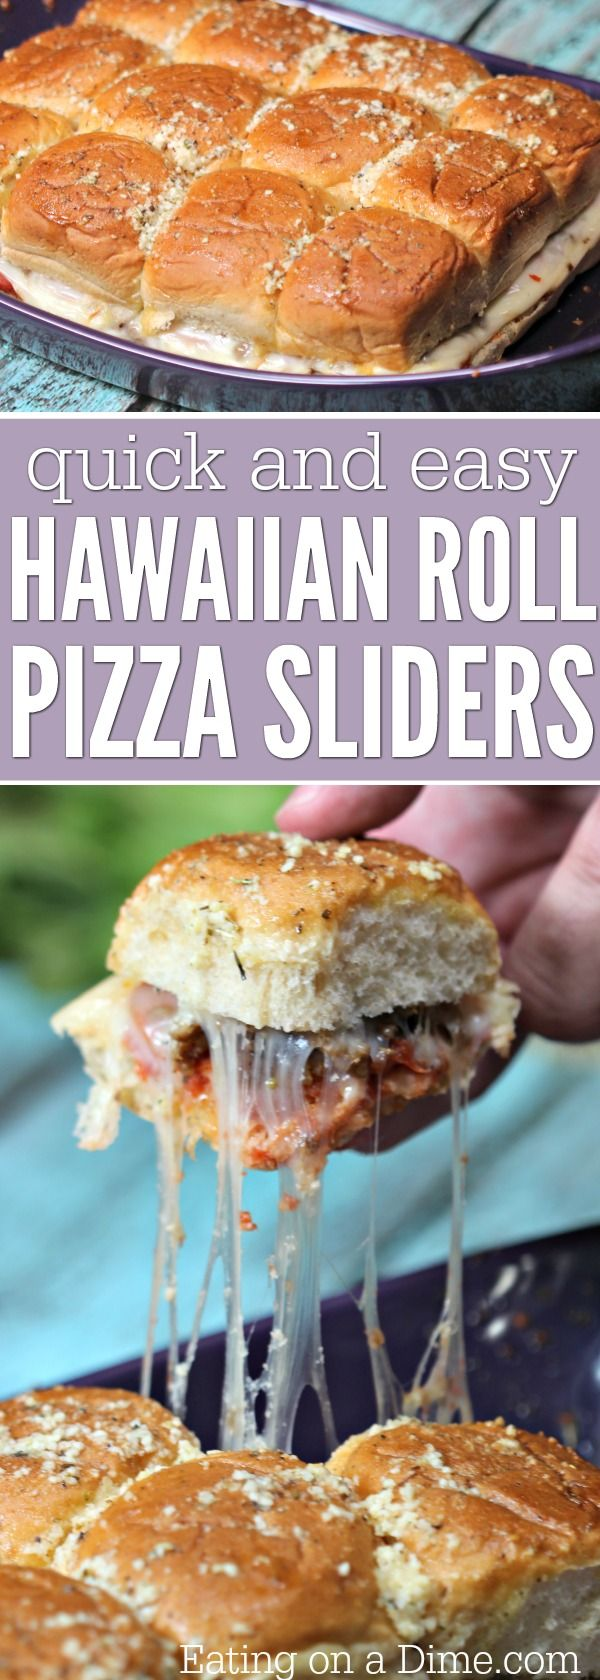 Looking for an easy sliders recipe for game day? Try this fun Hawaiian roll pizza sliders recipe today! It is a fun twist on a pizza without all the work!